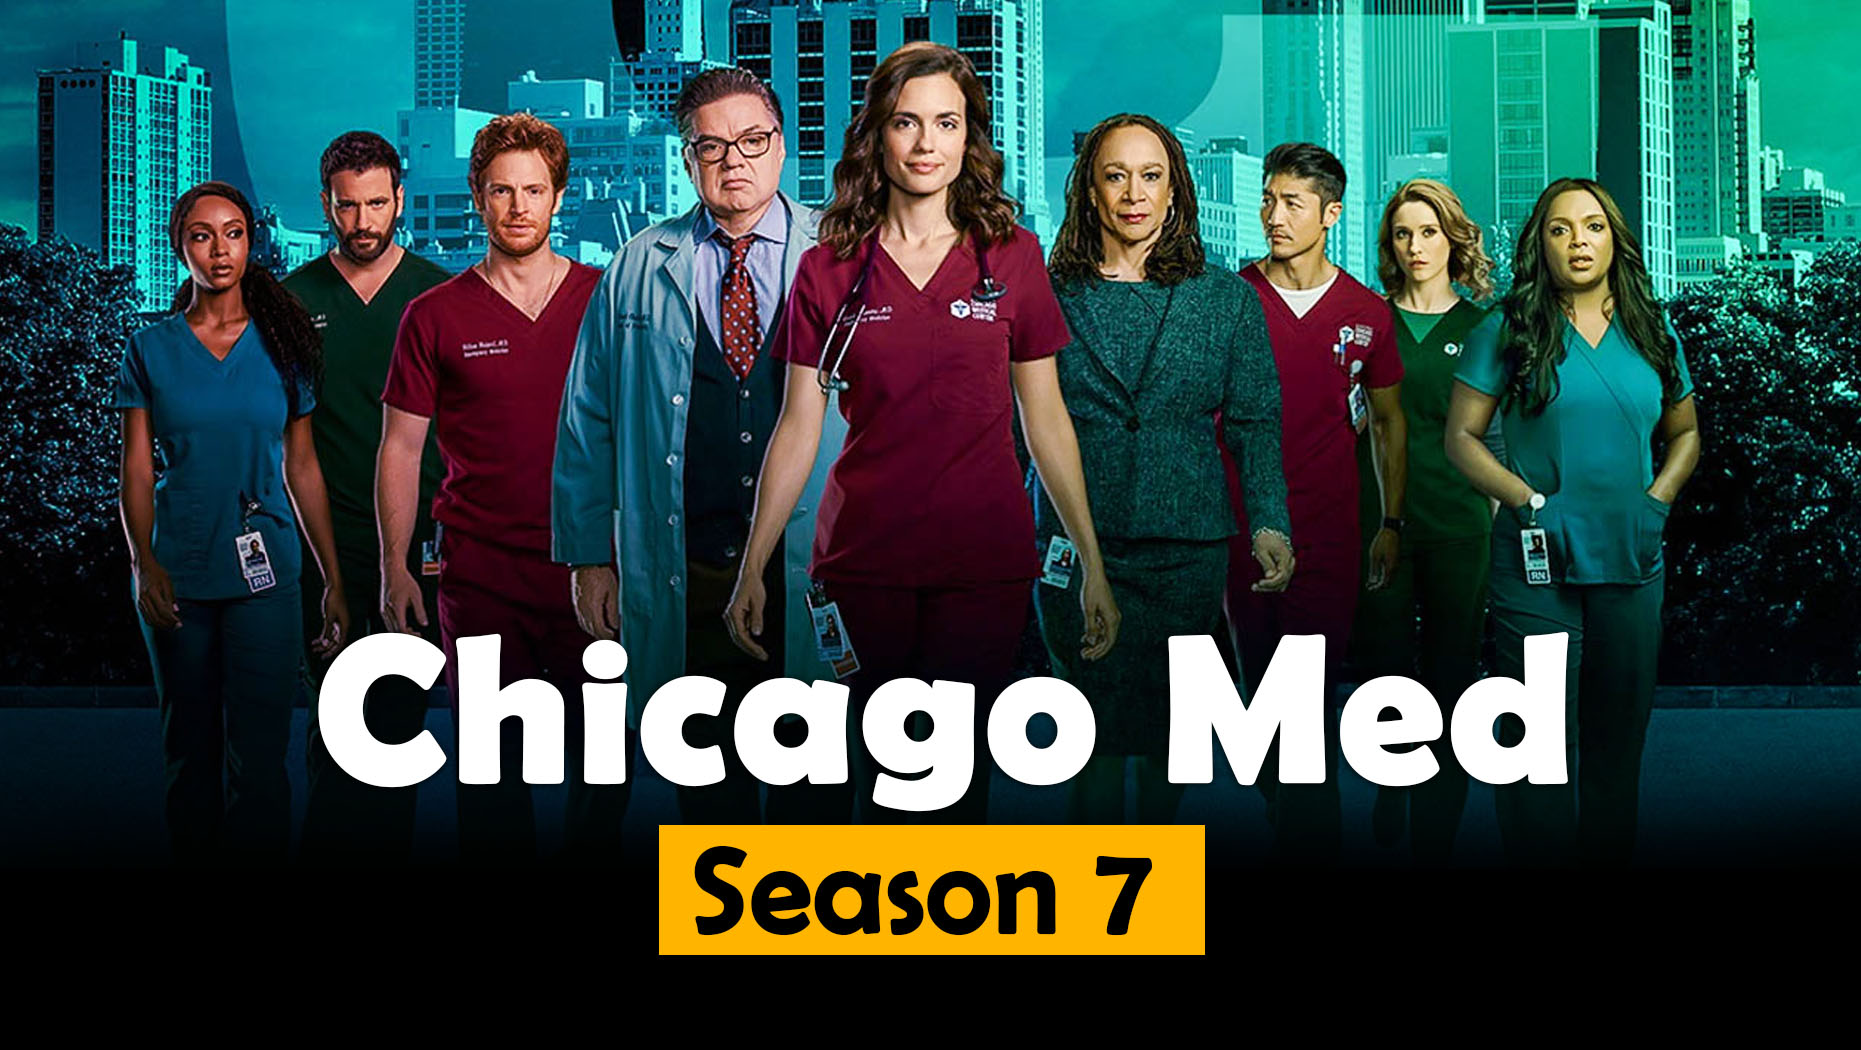 Chicago Med Season 7 Release Date, Cast, Synopsis & More